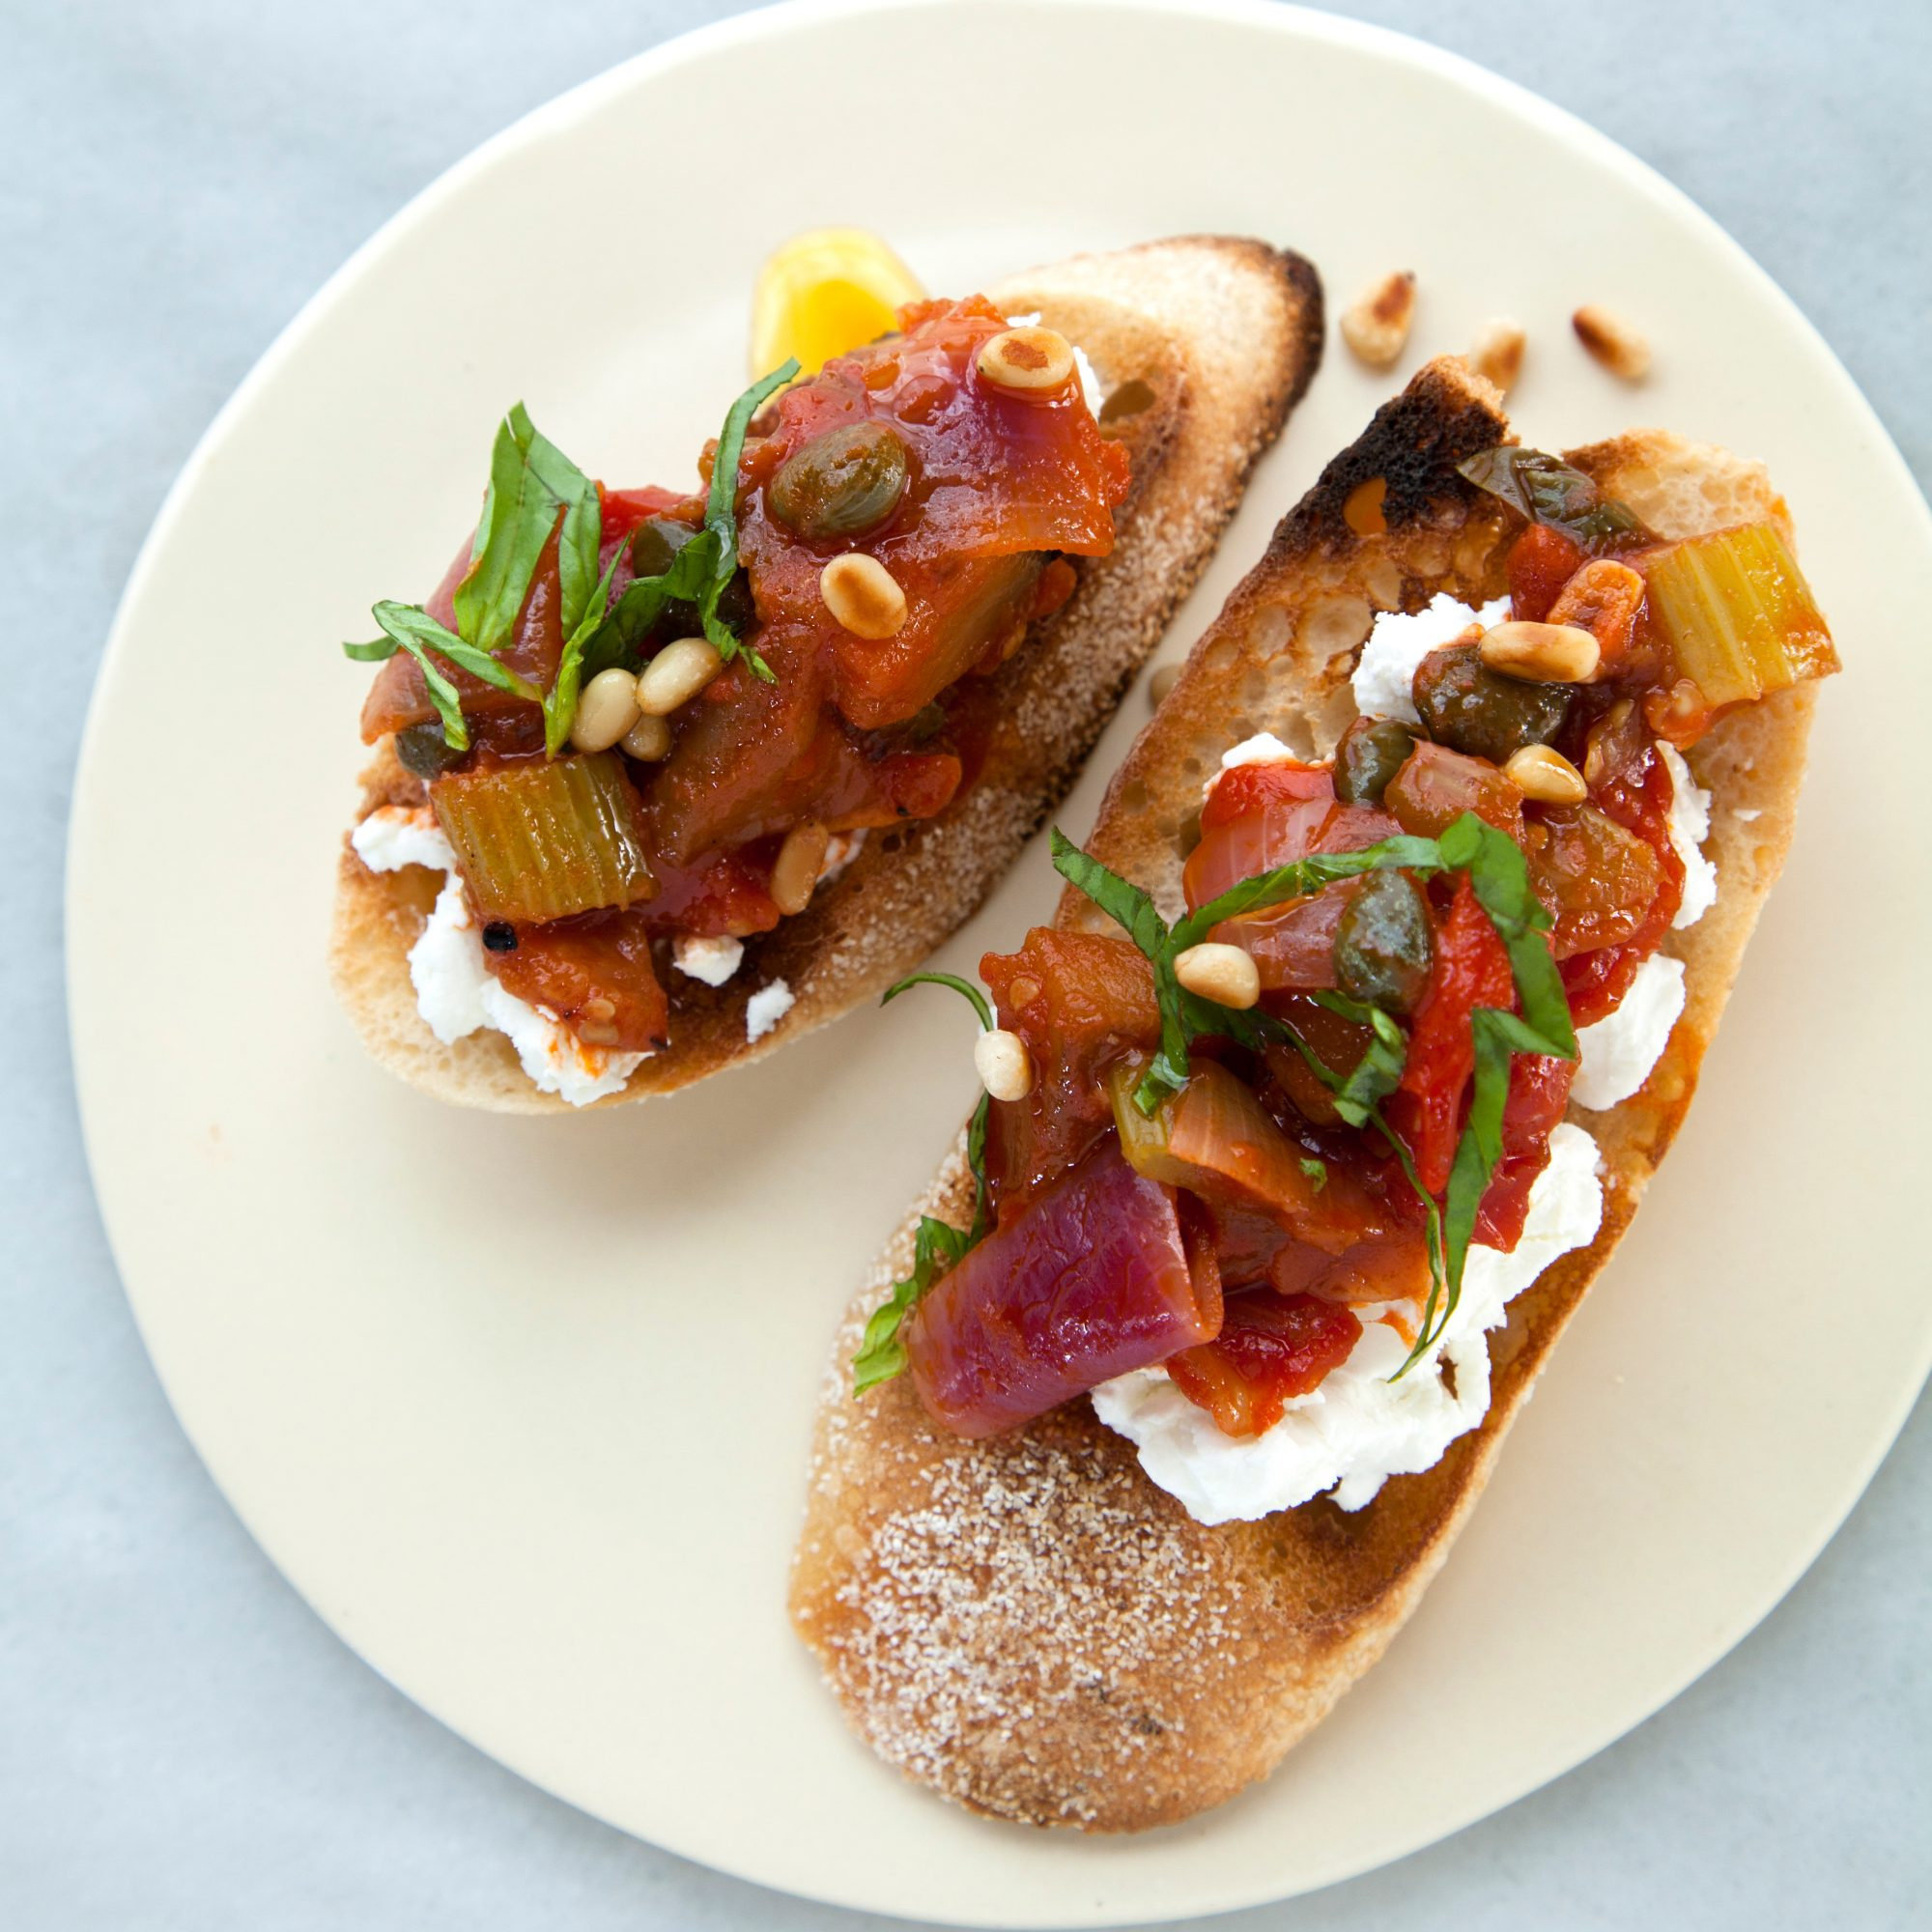 Caponata Crostini with Goat Cheese and Toasted Pine Nuts